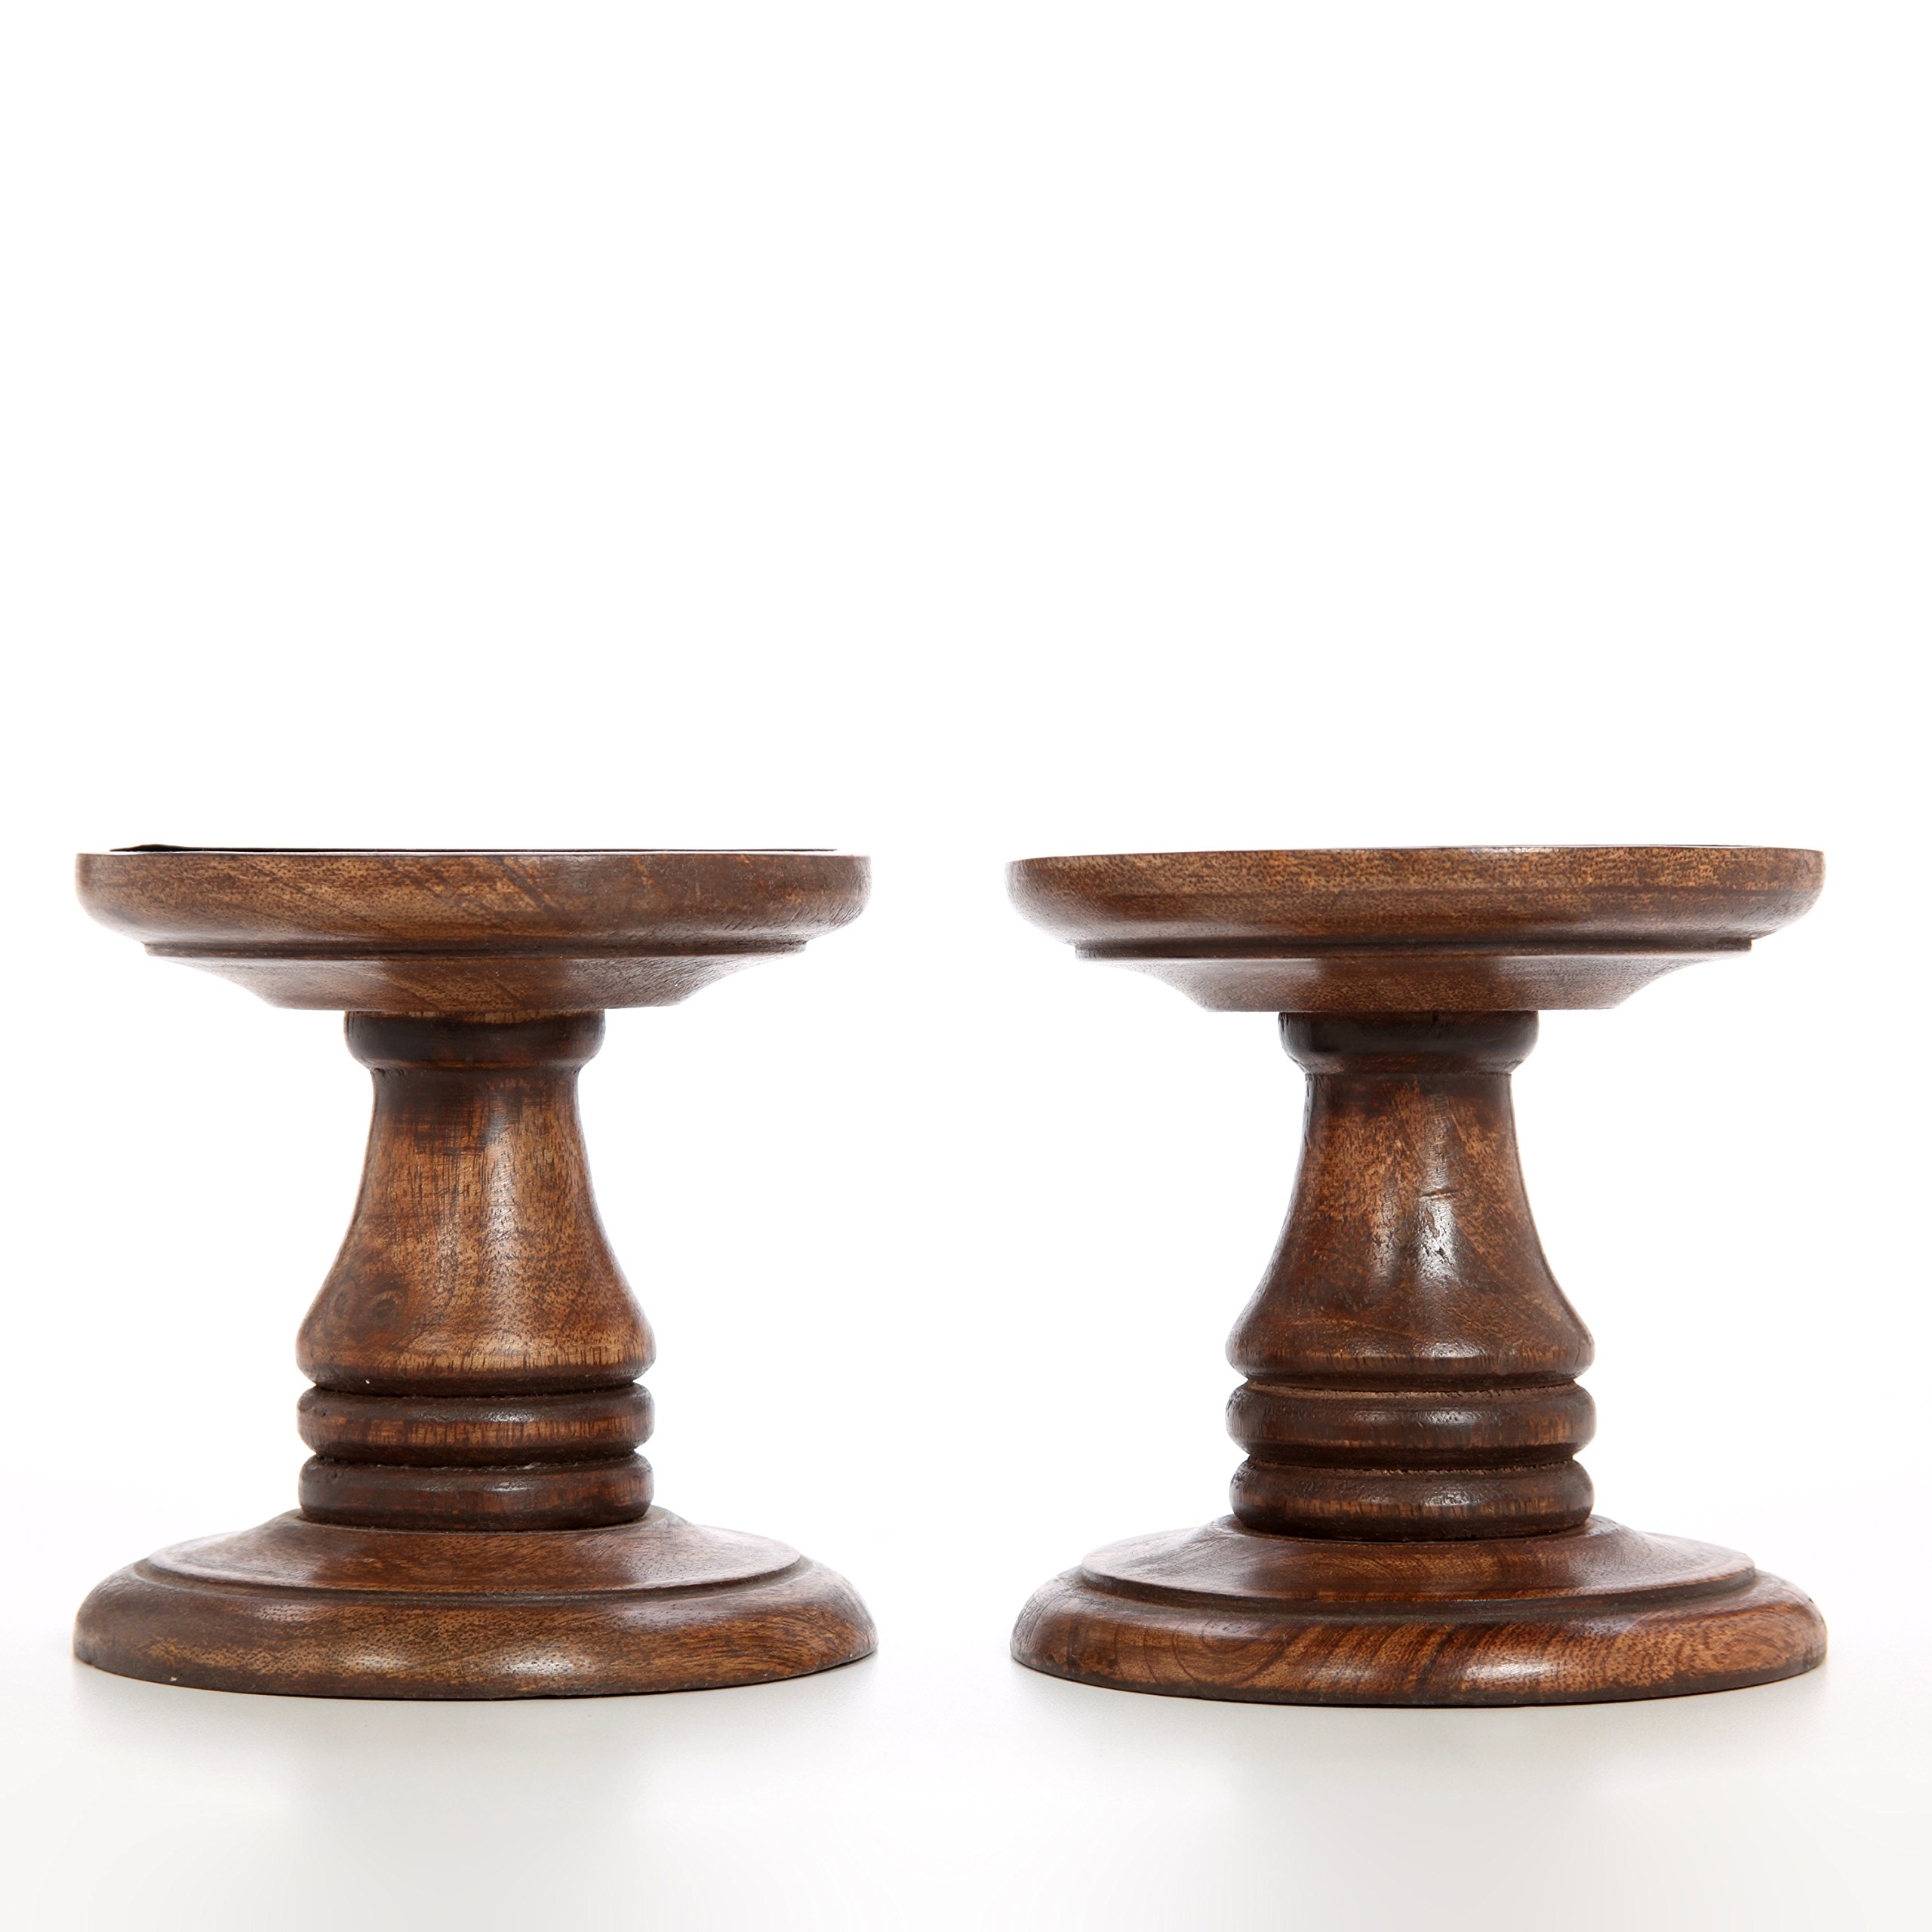 Hosley Set of 2 Wood Pillar Candle Holders - 5'' High. Ideal Gift for Weddings, Bridal, Party, Spa, Reiki, Meditation, Votive/LED/Pillar Candle Gardens